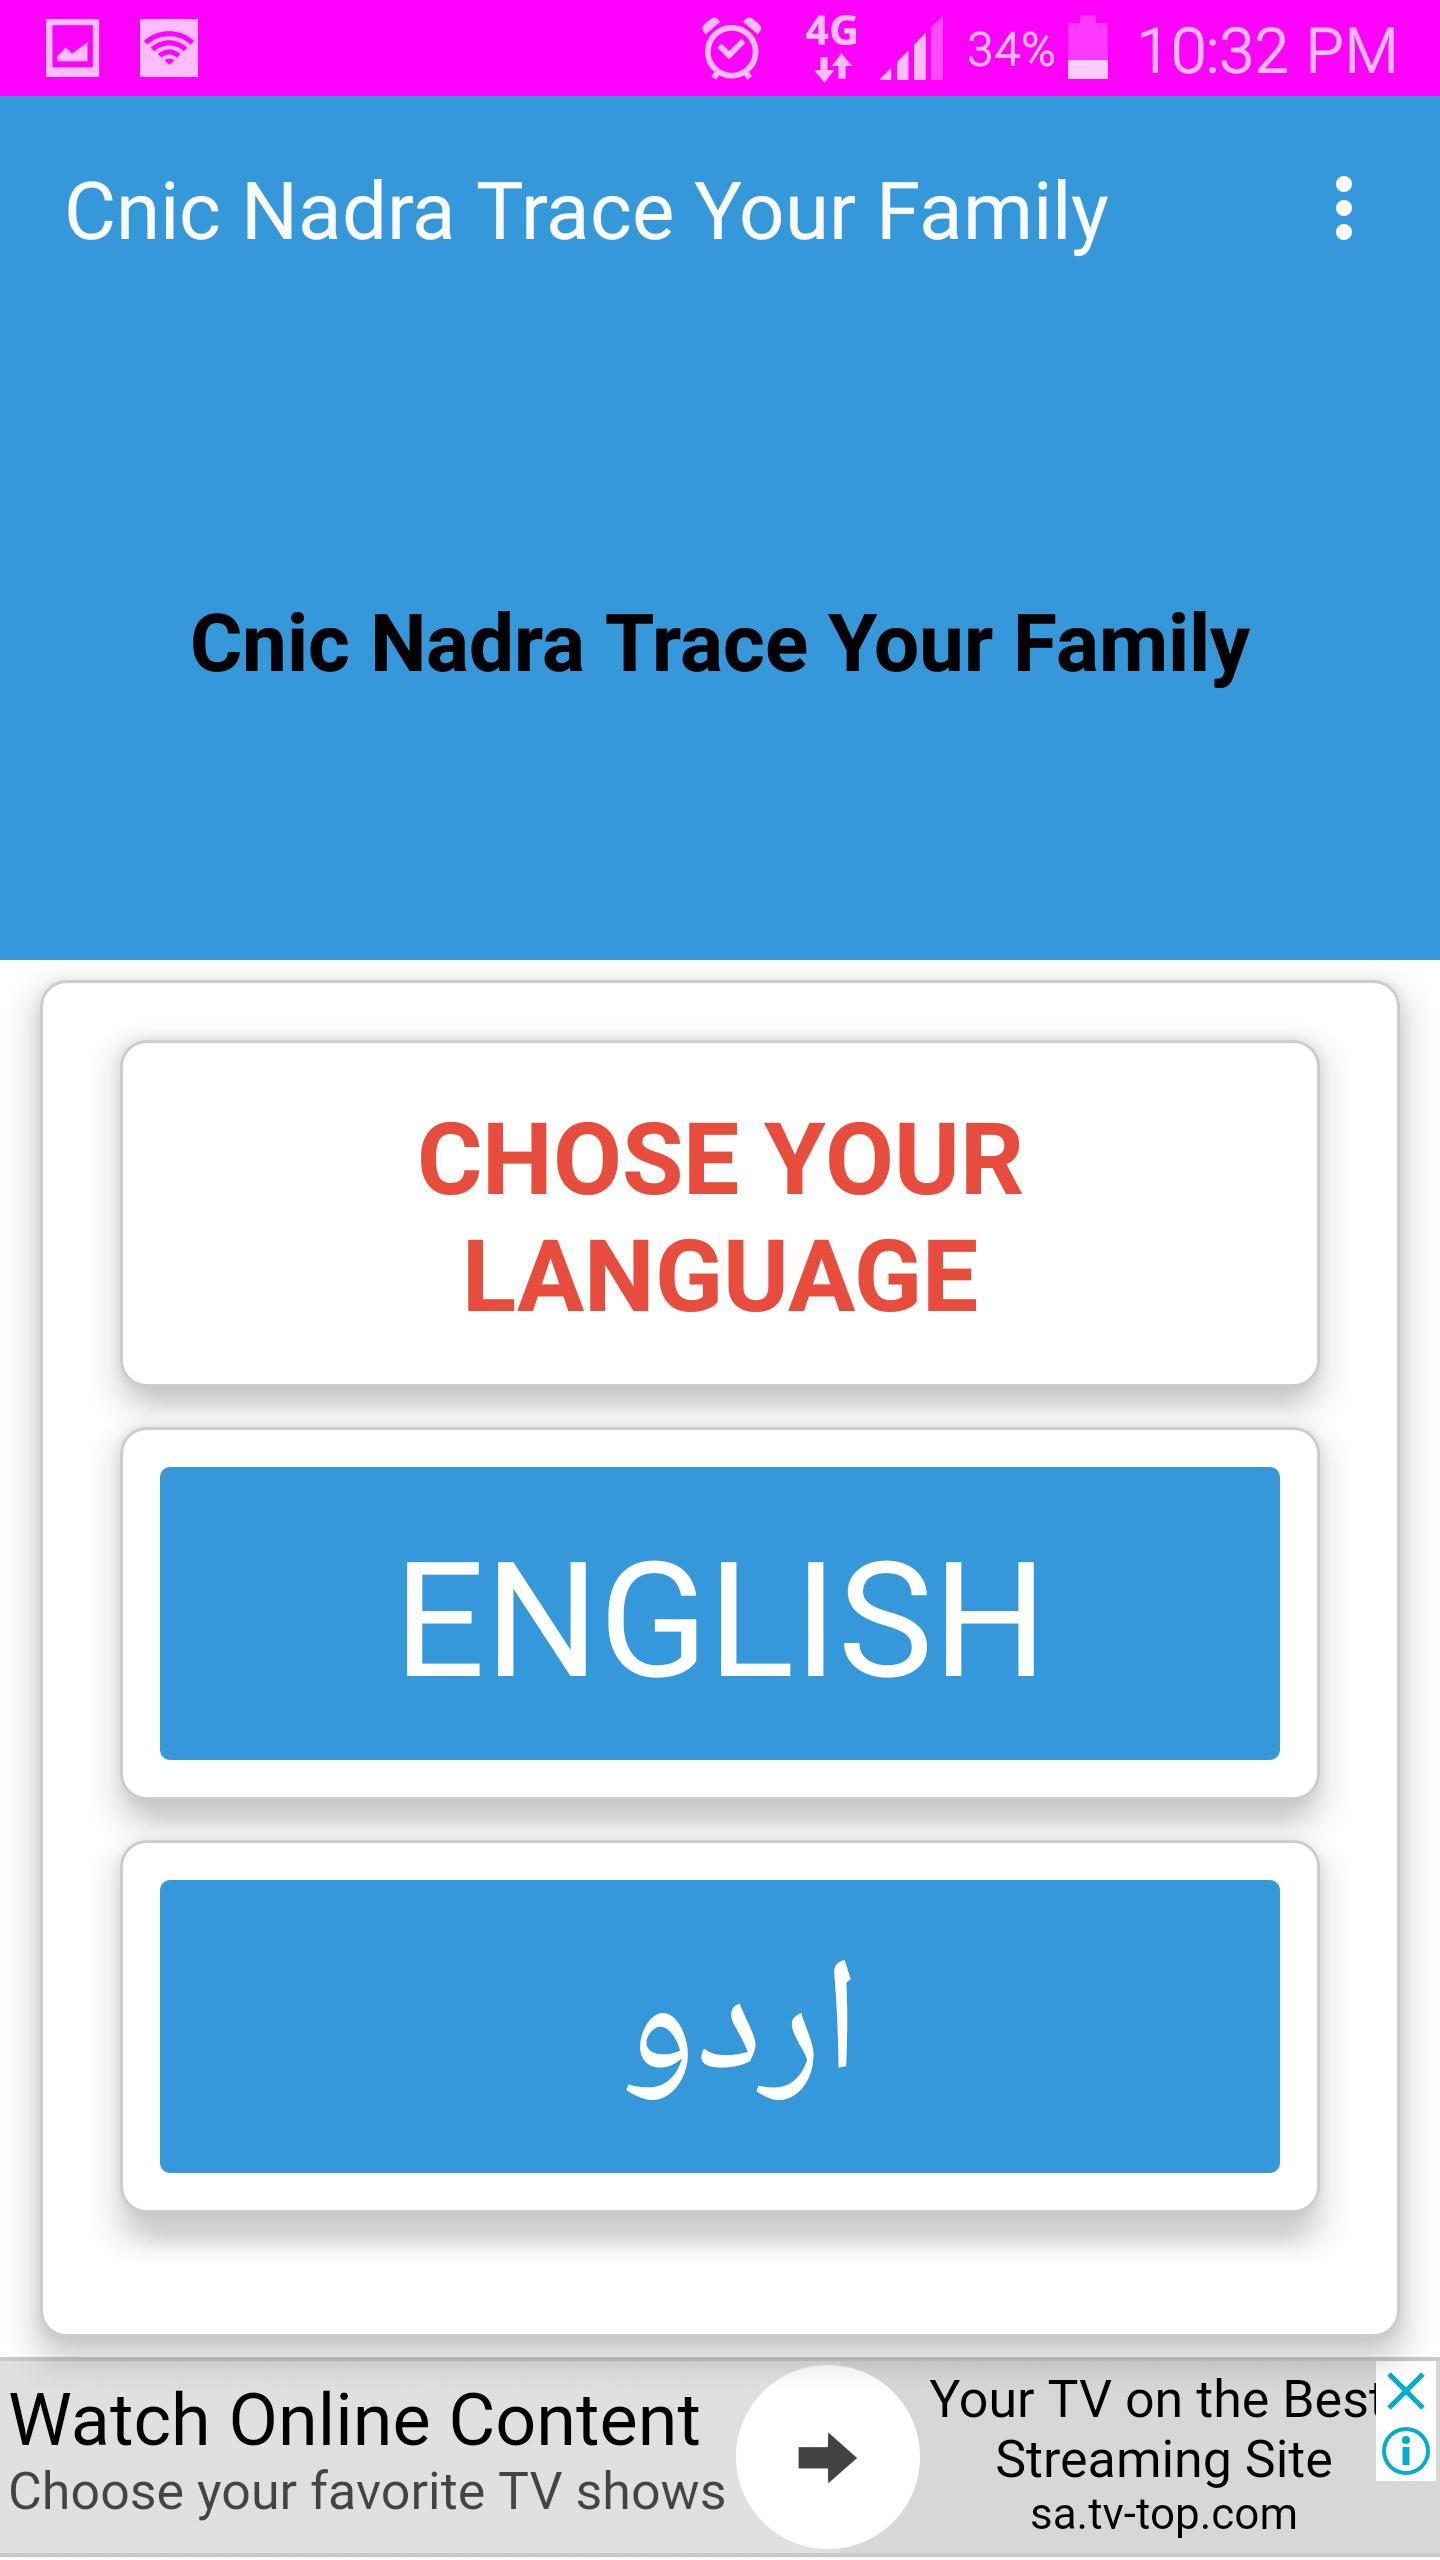 Cnic Nadra Trace Your Family for Android - APK Download